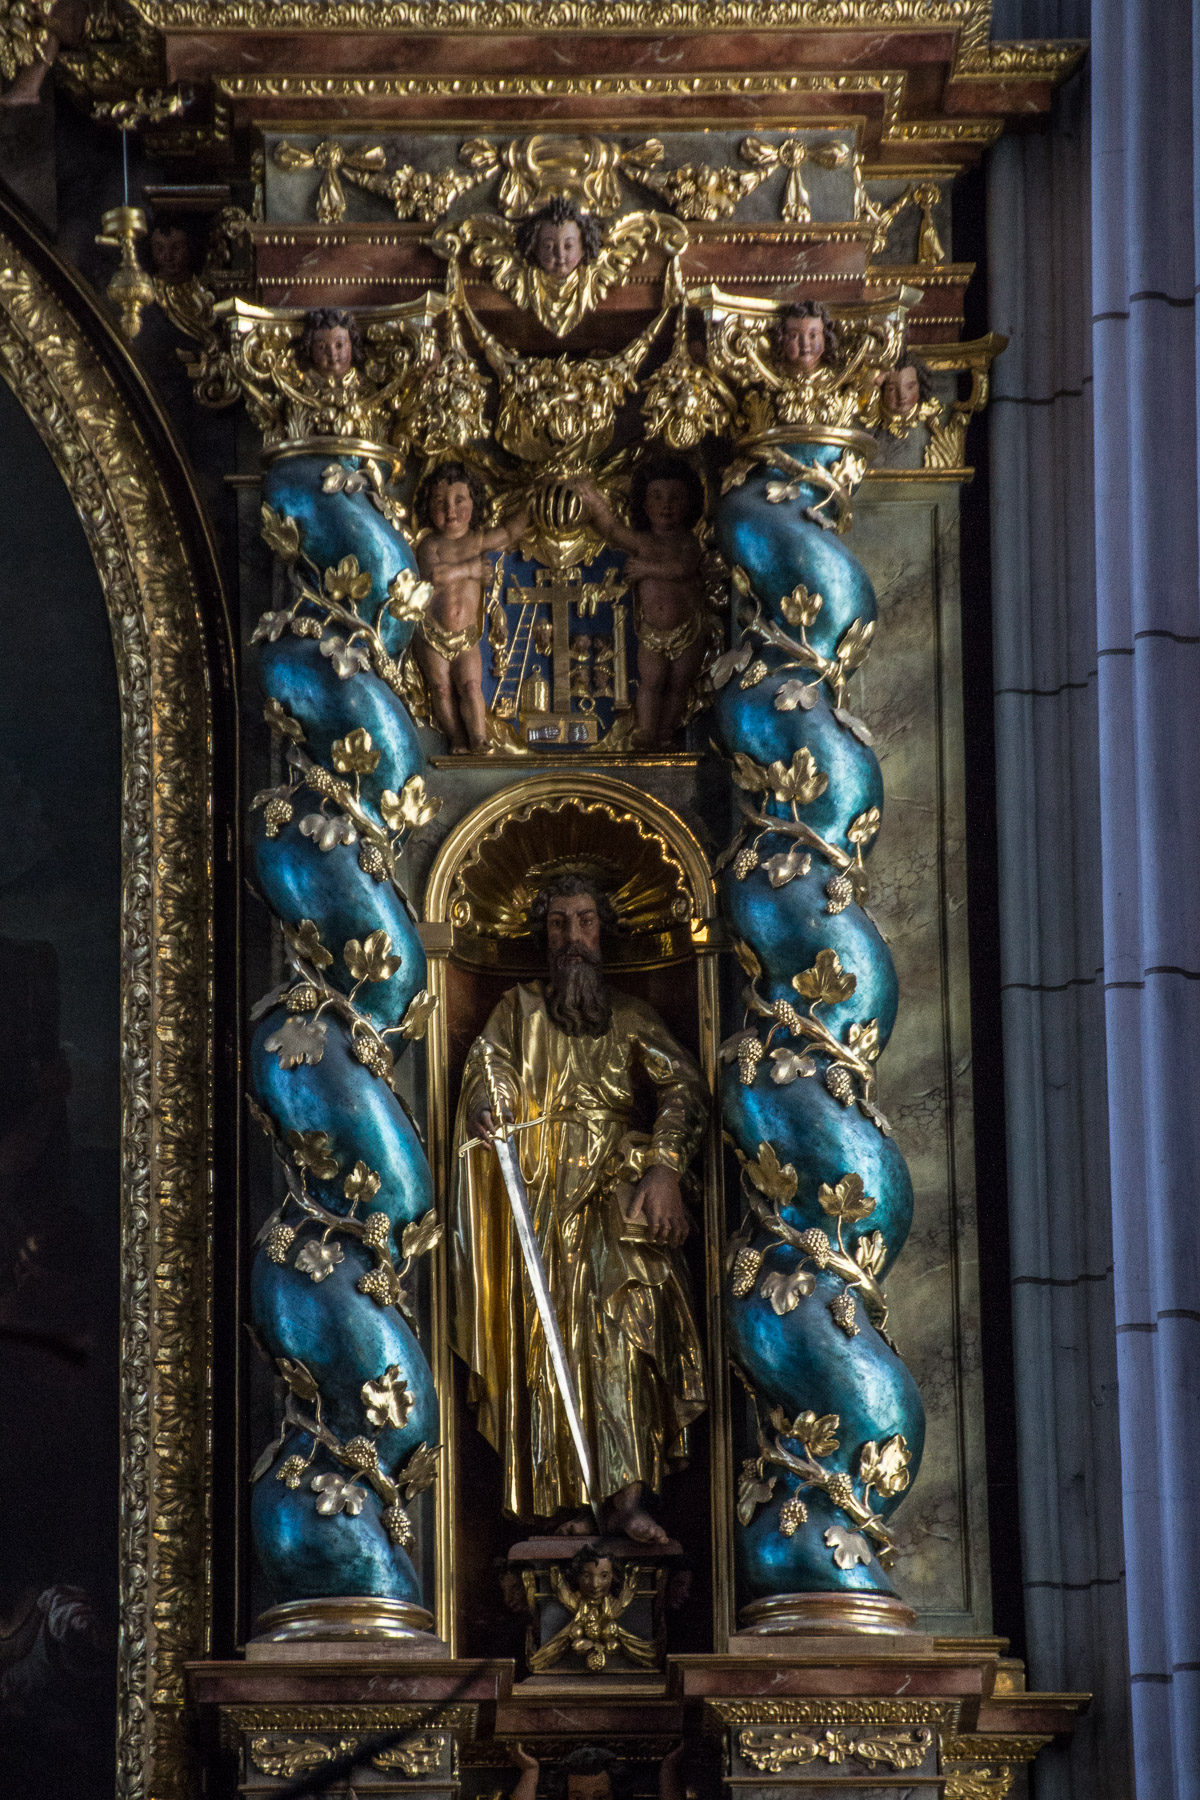 detail from altar of the abbey church